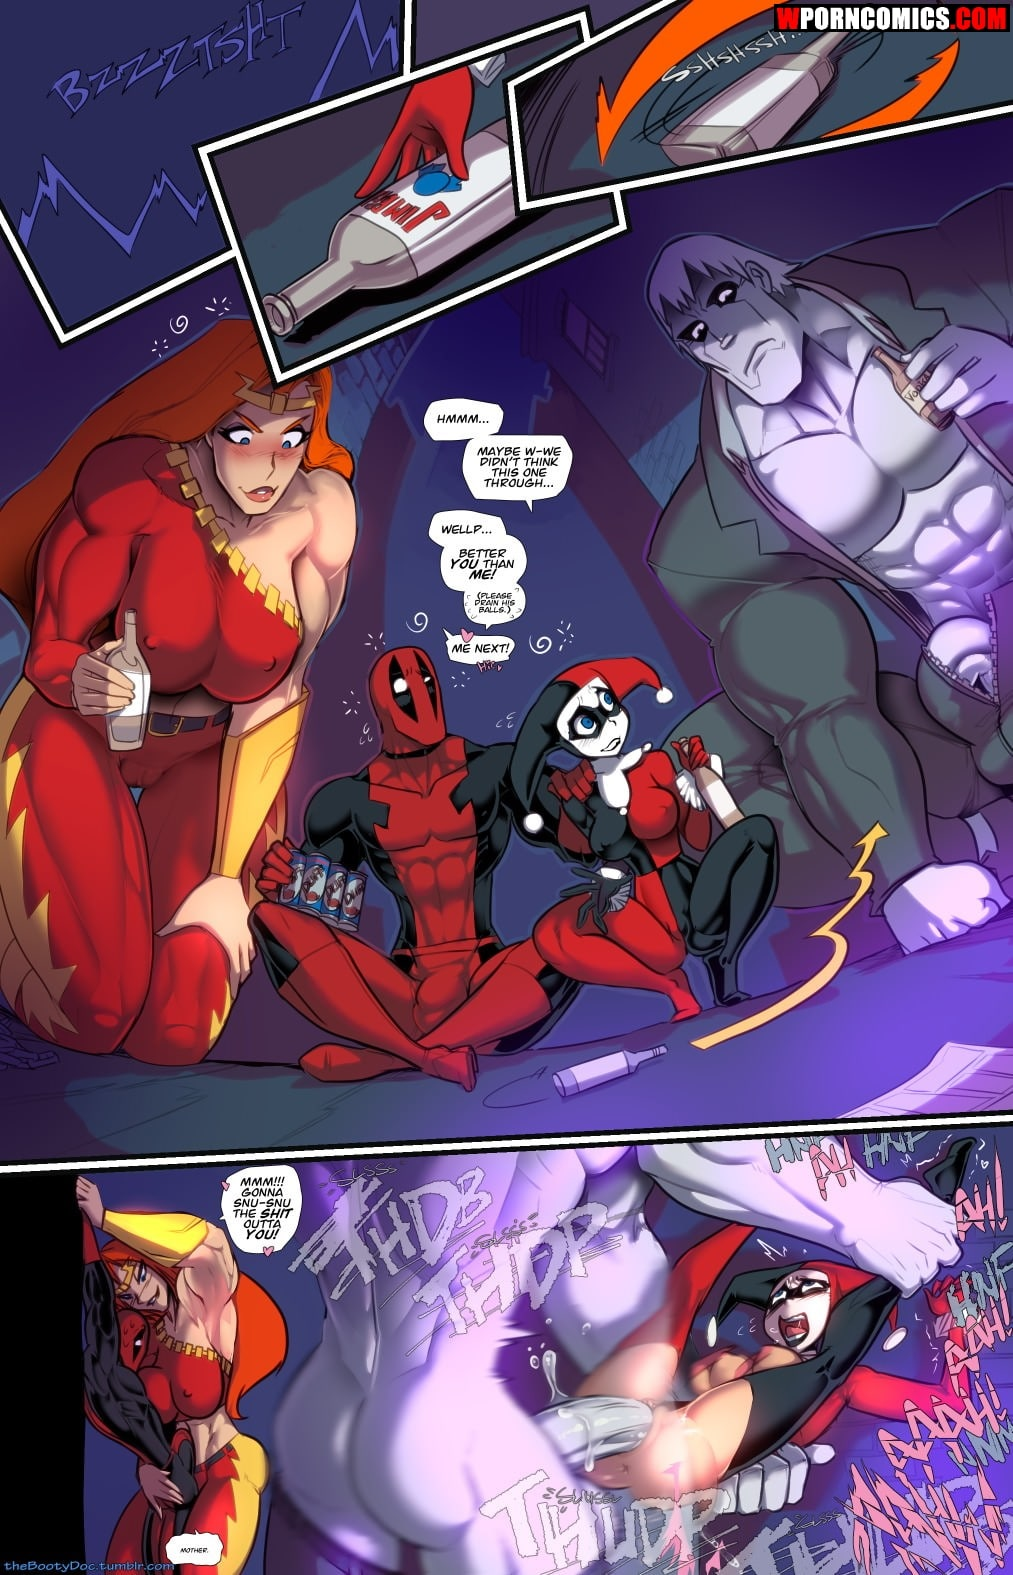 porn-comic-harley-queen-and-deadpool-crazy-insane-sex-2020-02-15/porn-comic-harley-queen-and-deadpool-crazy-insane-sex-2020-02-15-11817.jpg